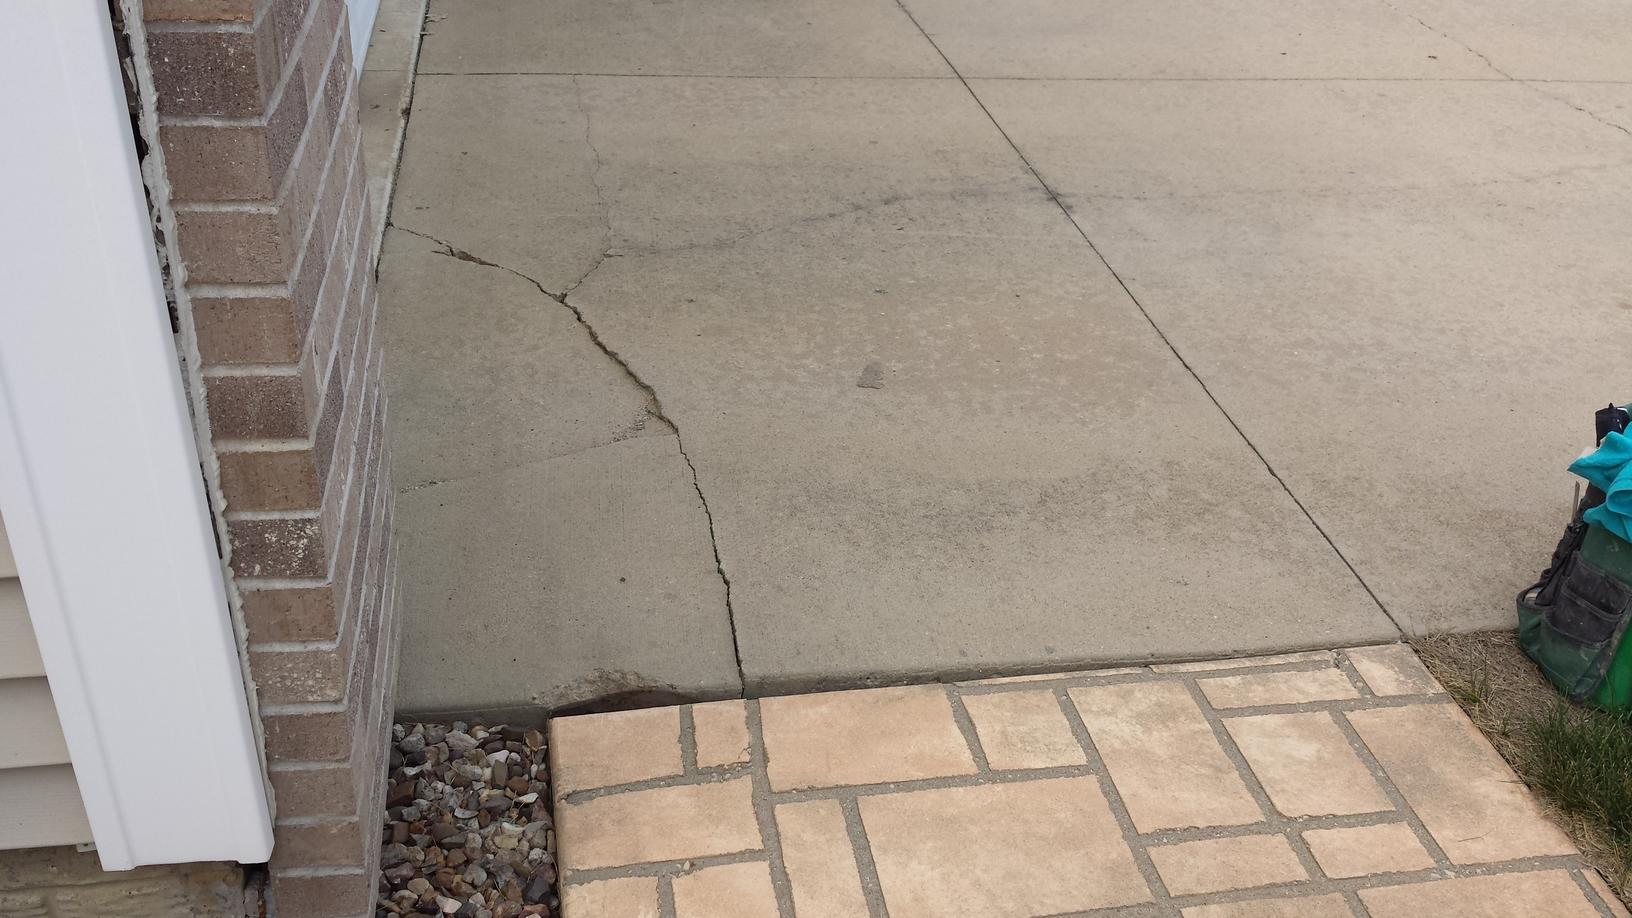 The sinking walkway caused the driveway to crack.